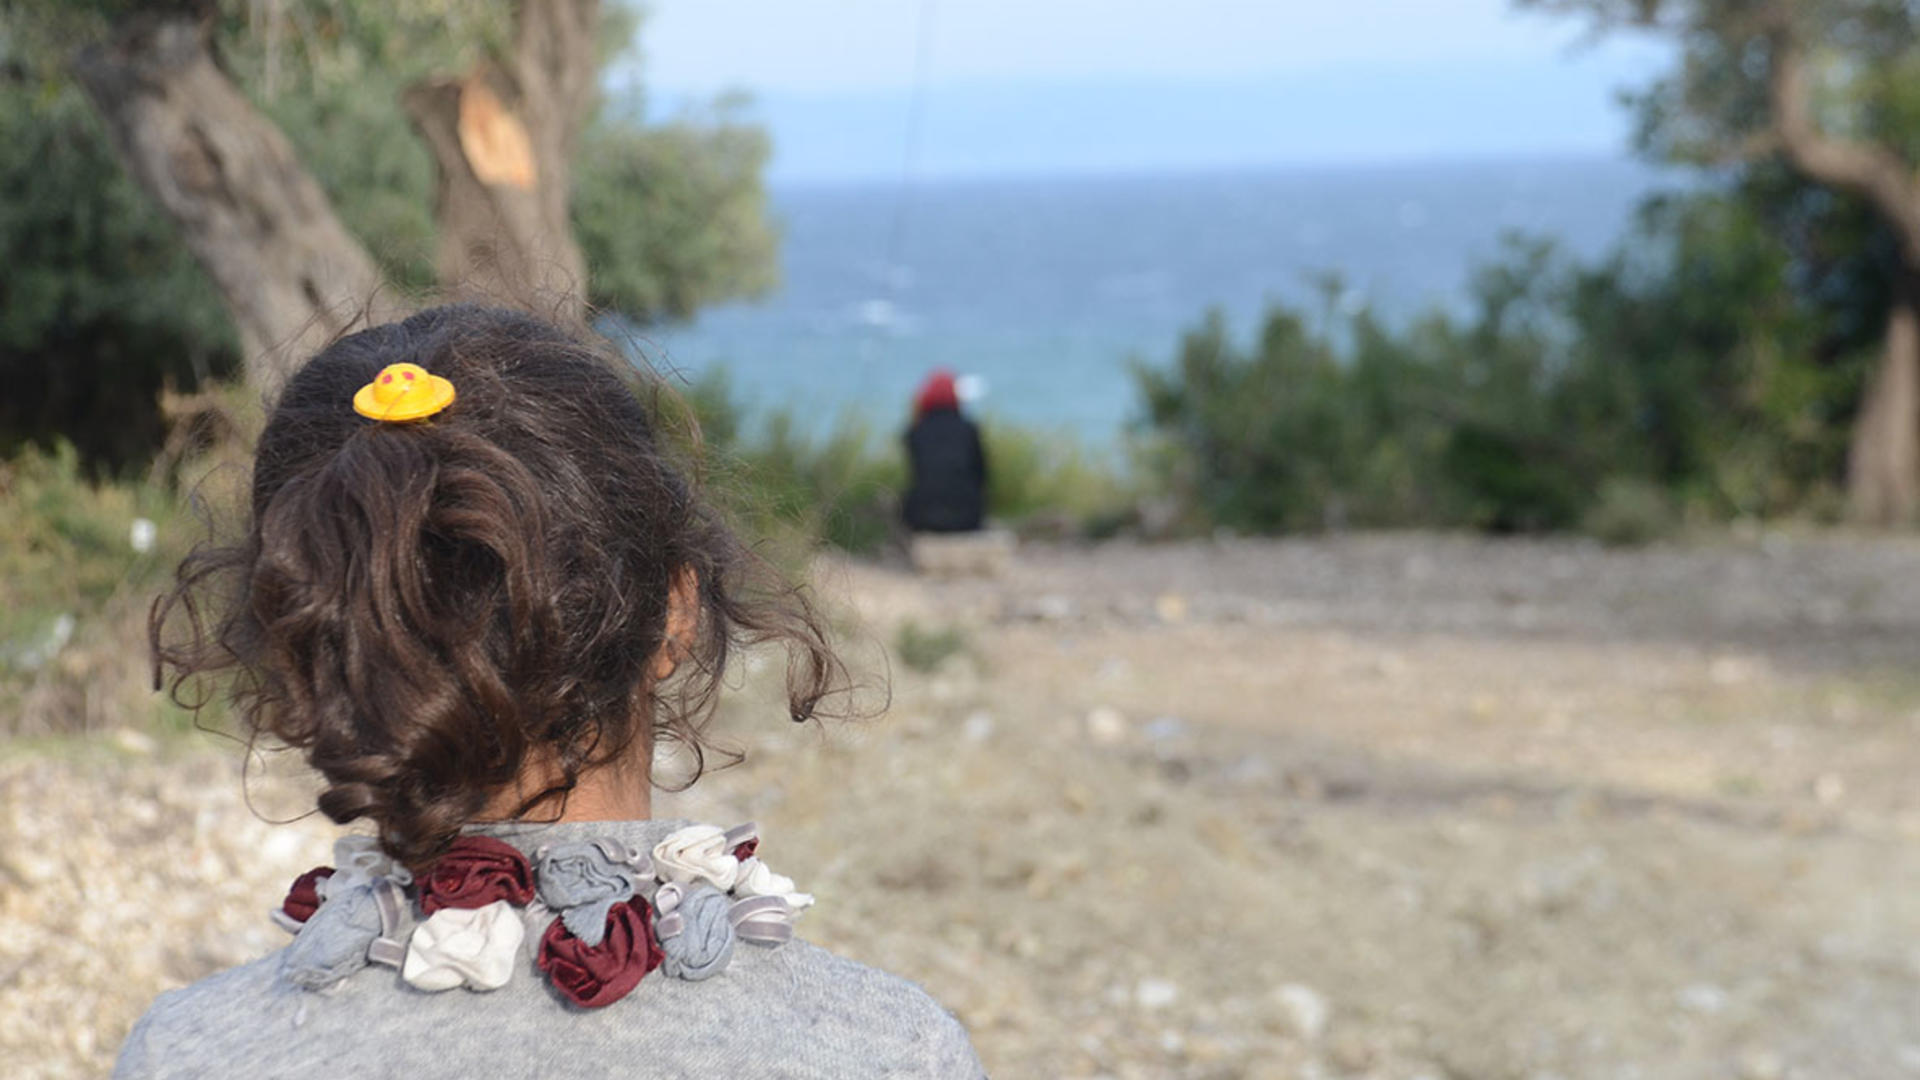 A refugee child on the island of Lebos, in Greece, looks out toward the sea